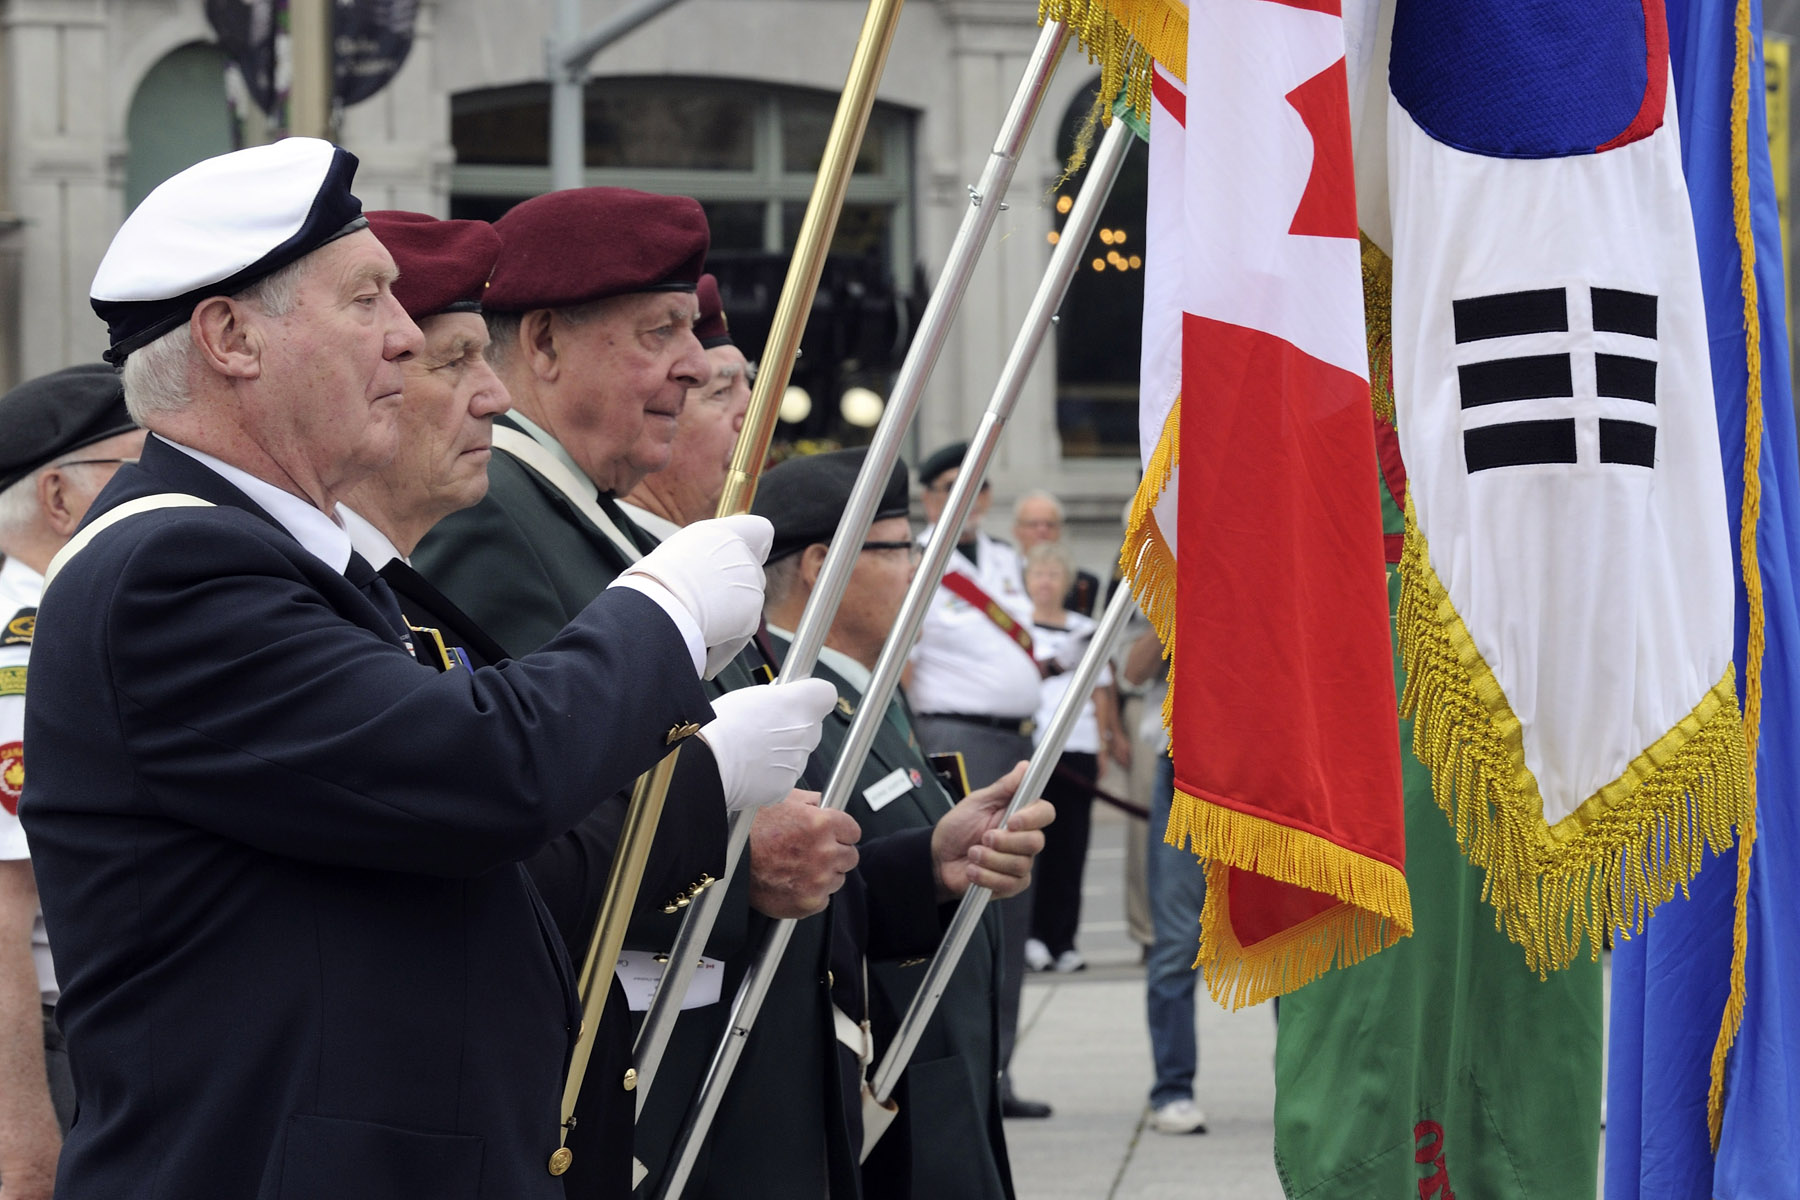 2013 marks the 60th anniversary of the Korean War Armistice and the 50th anniversary of diplomatic relations between Canada and South Korea.